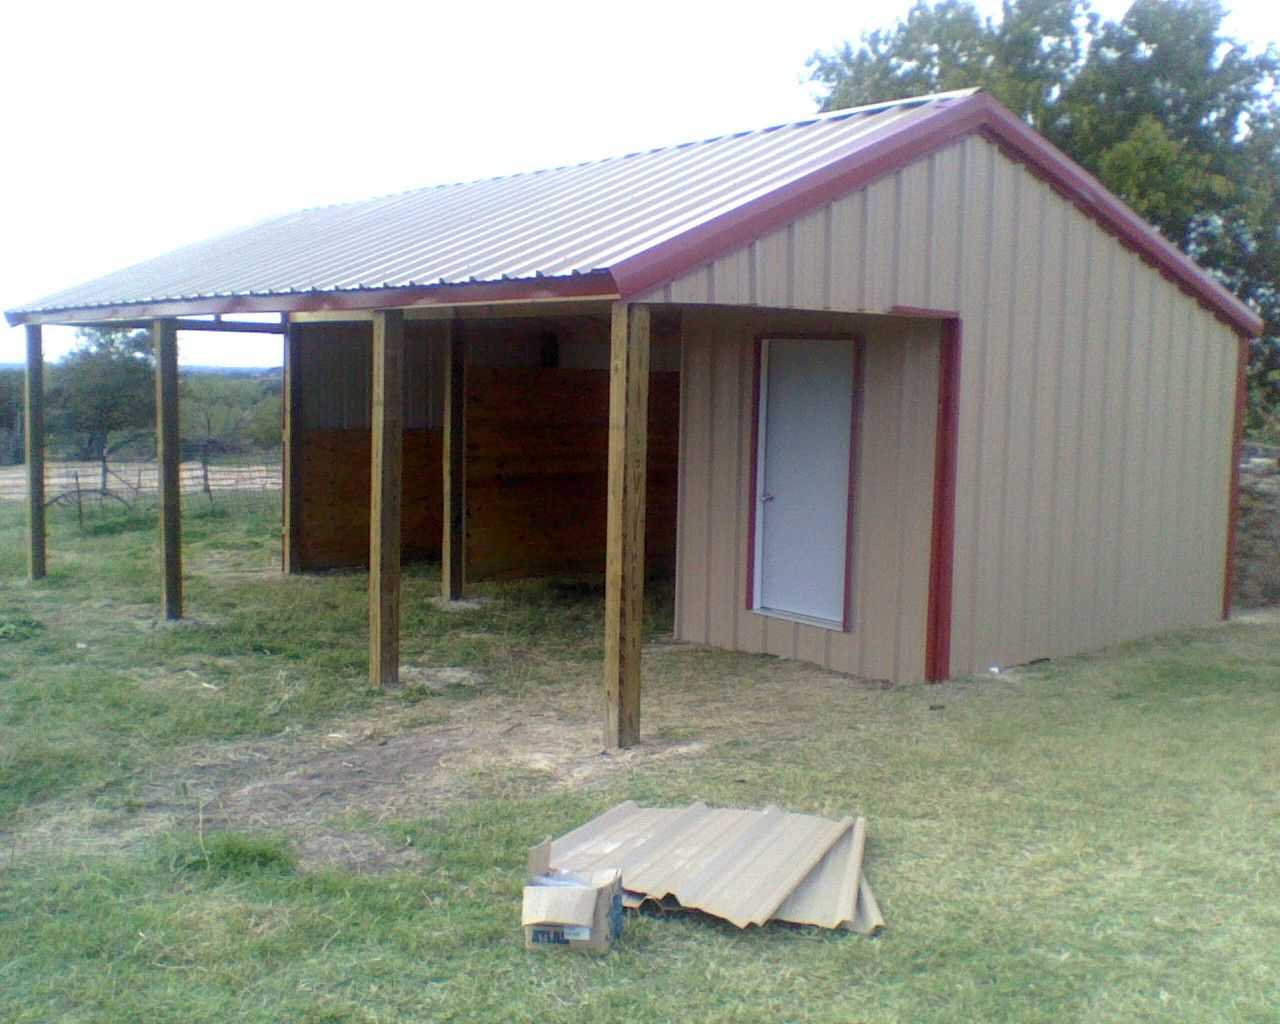 Small 2 stall horse barn small barns horse related for Small barn ideas